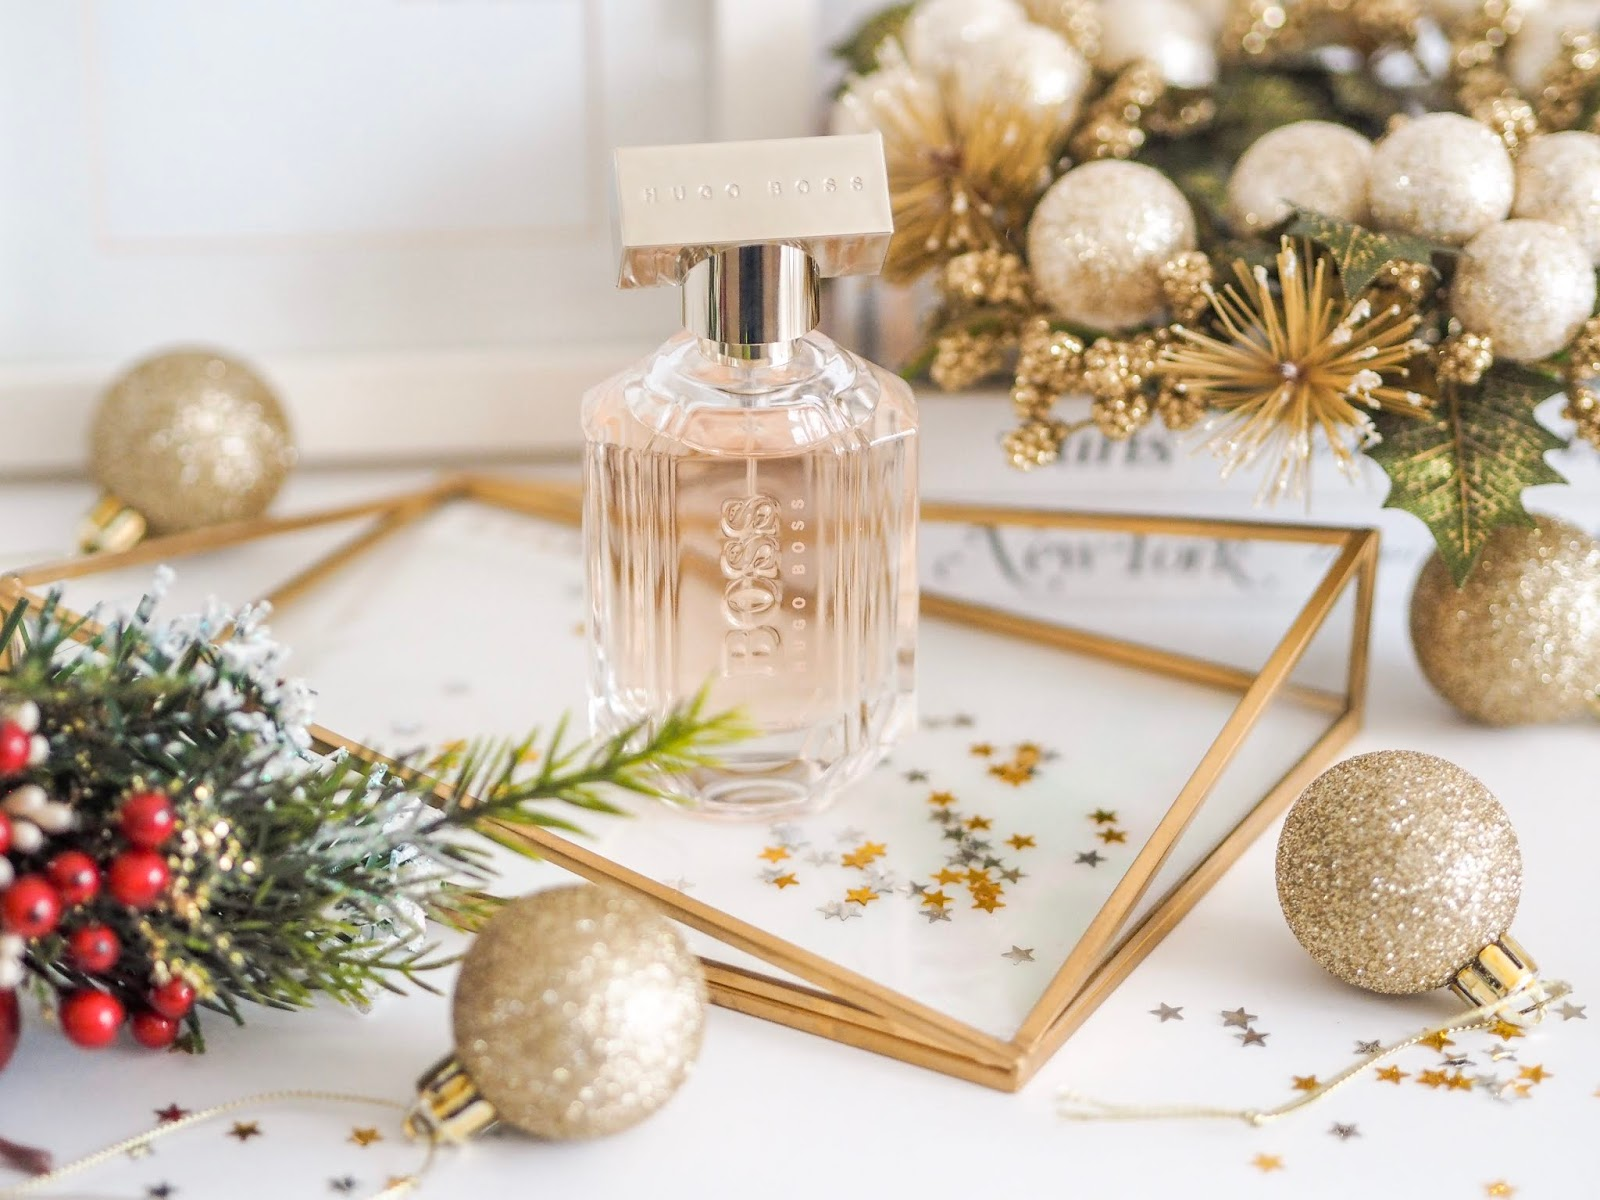 Scented Stocking Fillers by Fragrance Direct, Katie Kirk Loves, UK Blogger, Fragrance Review, Fragrance Lover, Perfume Blog, Fragrance Blog, Lacoste Perfume, Hugo Boss Perfume, Marc Jacobs Daisy Perfume, Gifts For Her, Christmas Gift Guide, Stocking Fillers For Her